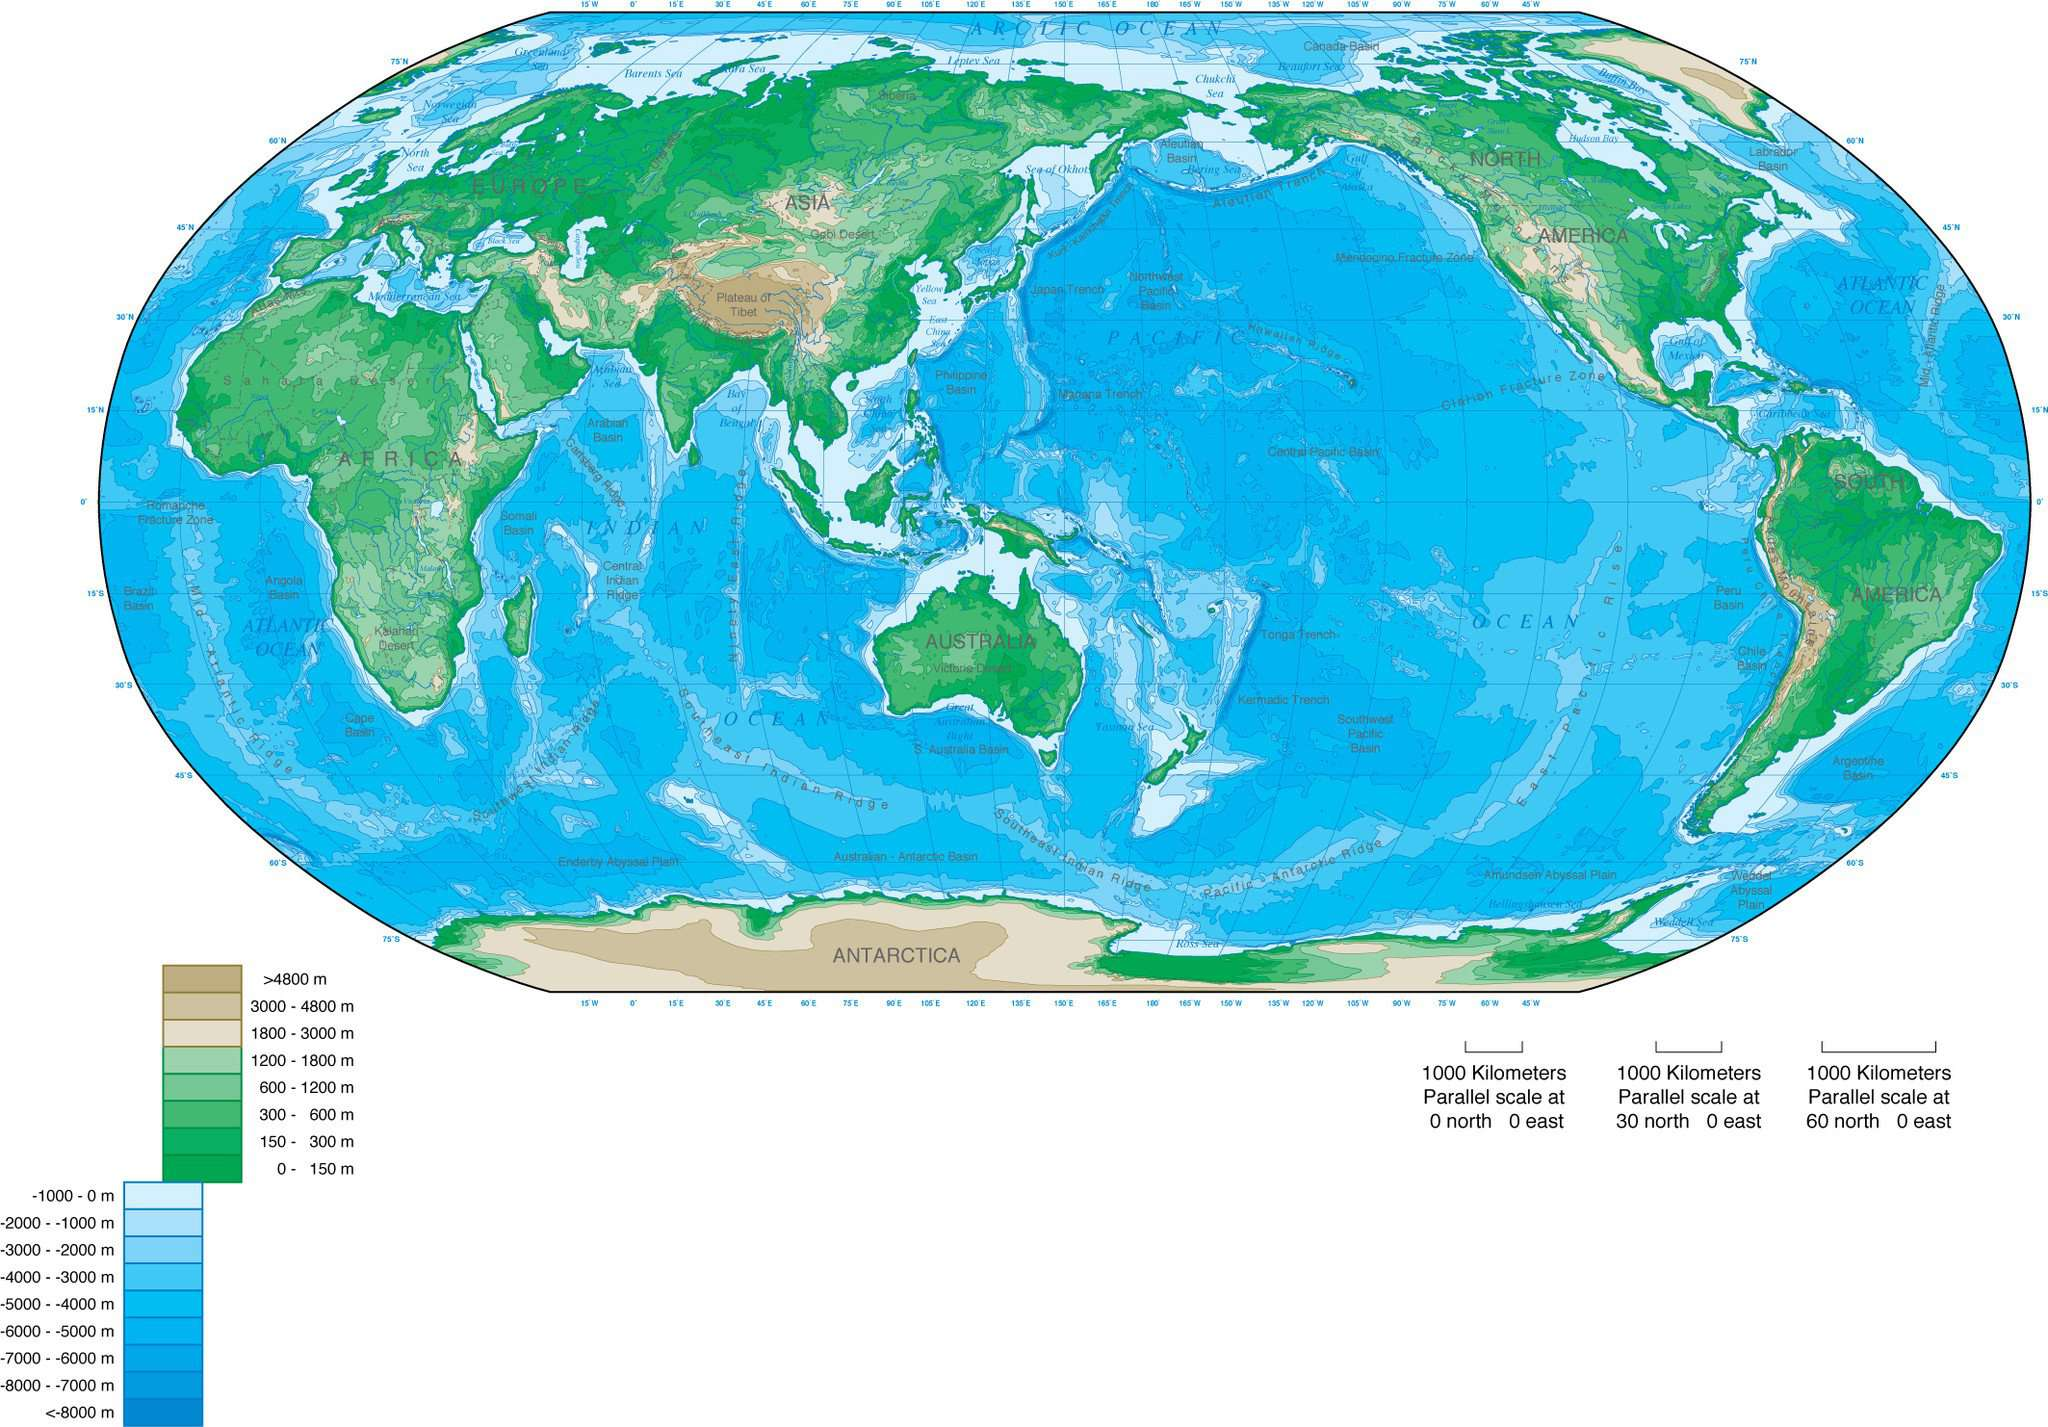 World Map Asia Centered.Adobe Illustrator Vector Format World Map With Contours Robinson